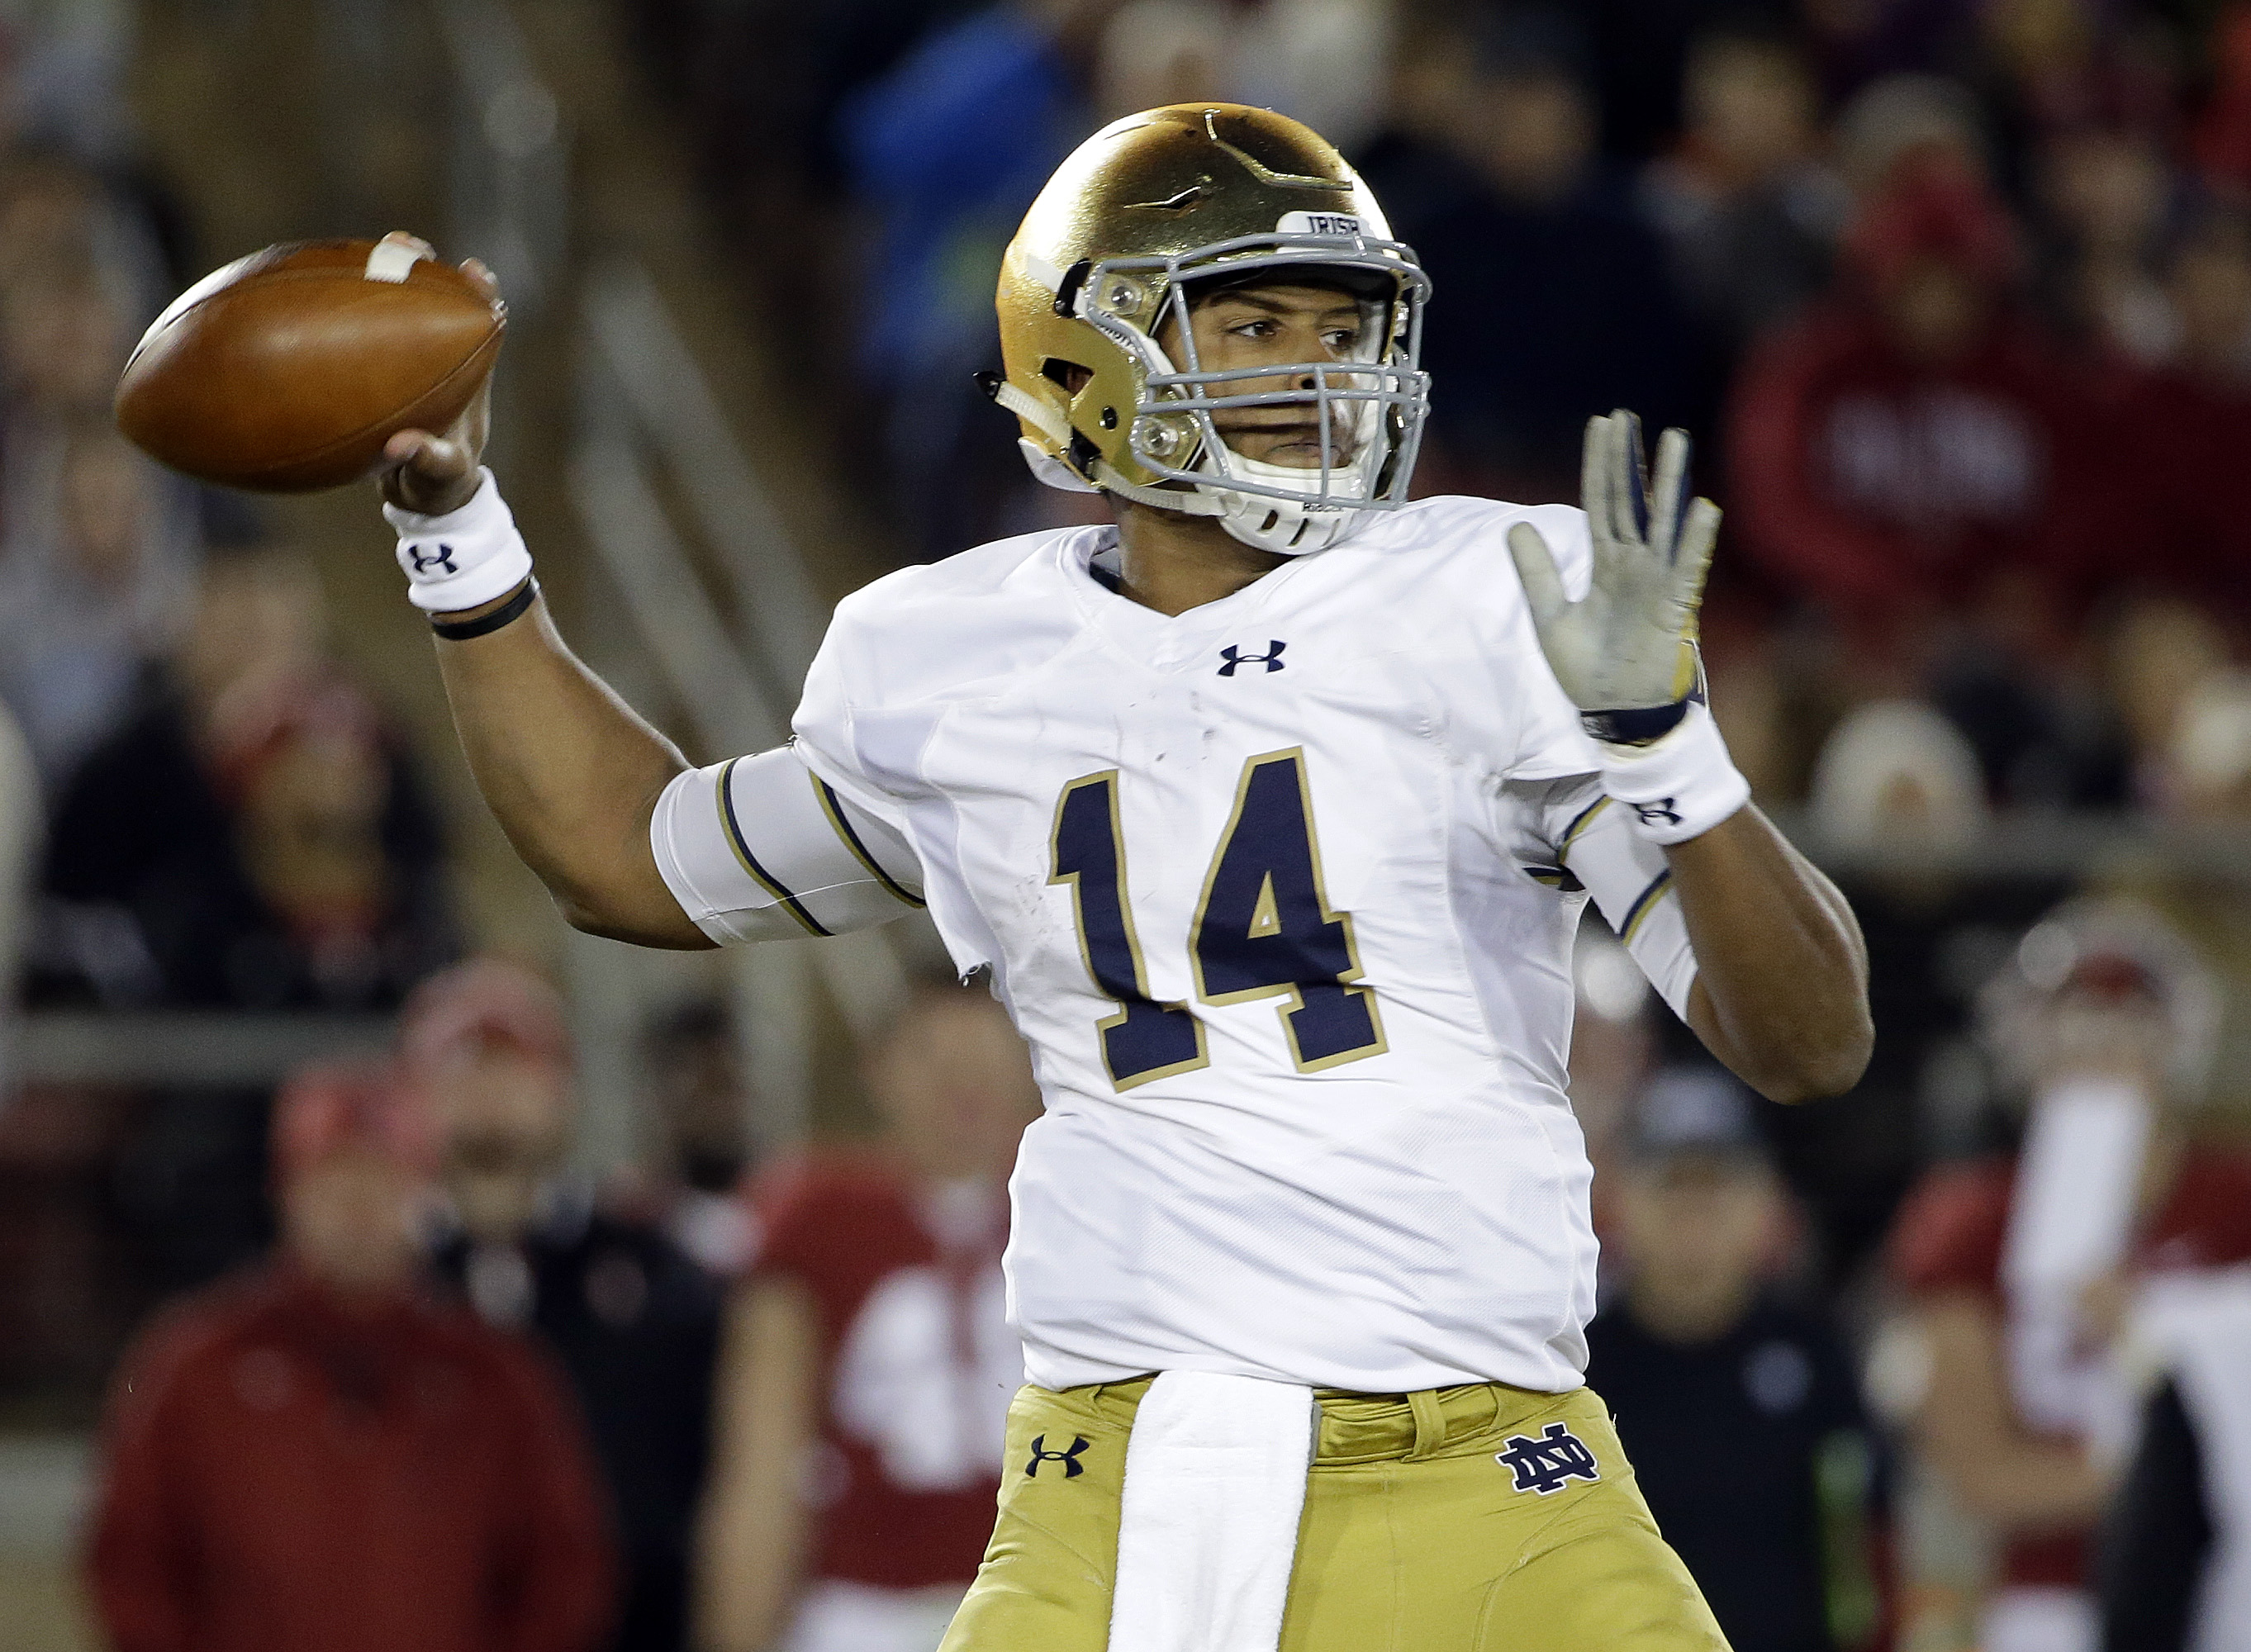 FILE - In this Nov. 28, 2015 file photo, Notre Dame quarterback DeShone Kizer throws against Stanford during the first half of an NCAA college football game, in Stanford, Calif. Life has been a blur for Kizer since being thrust into the starter's role whe